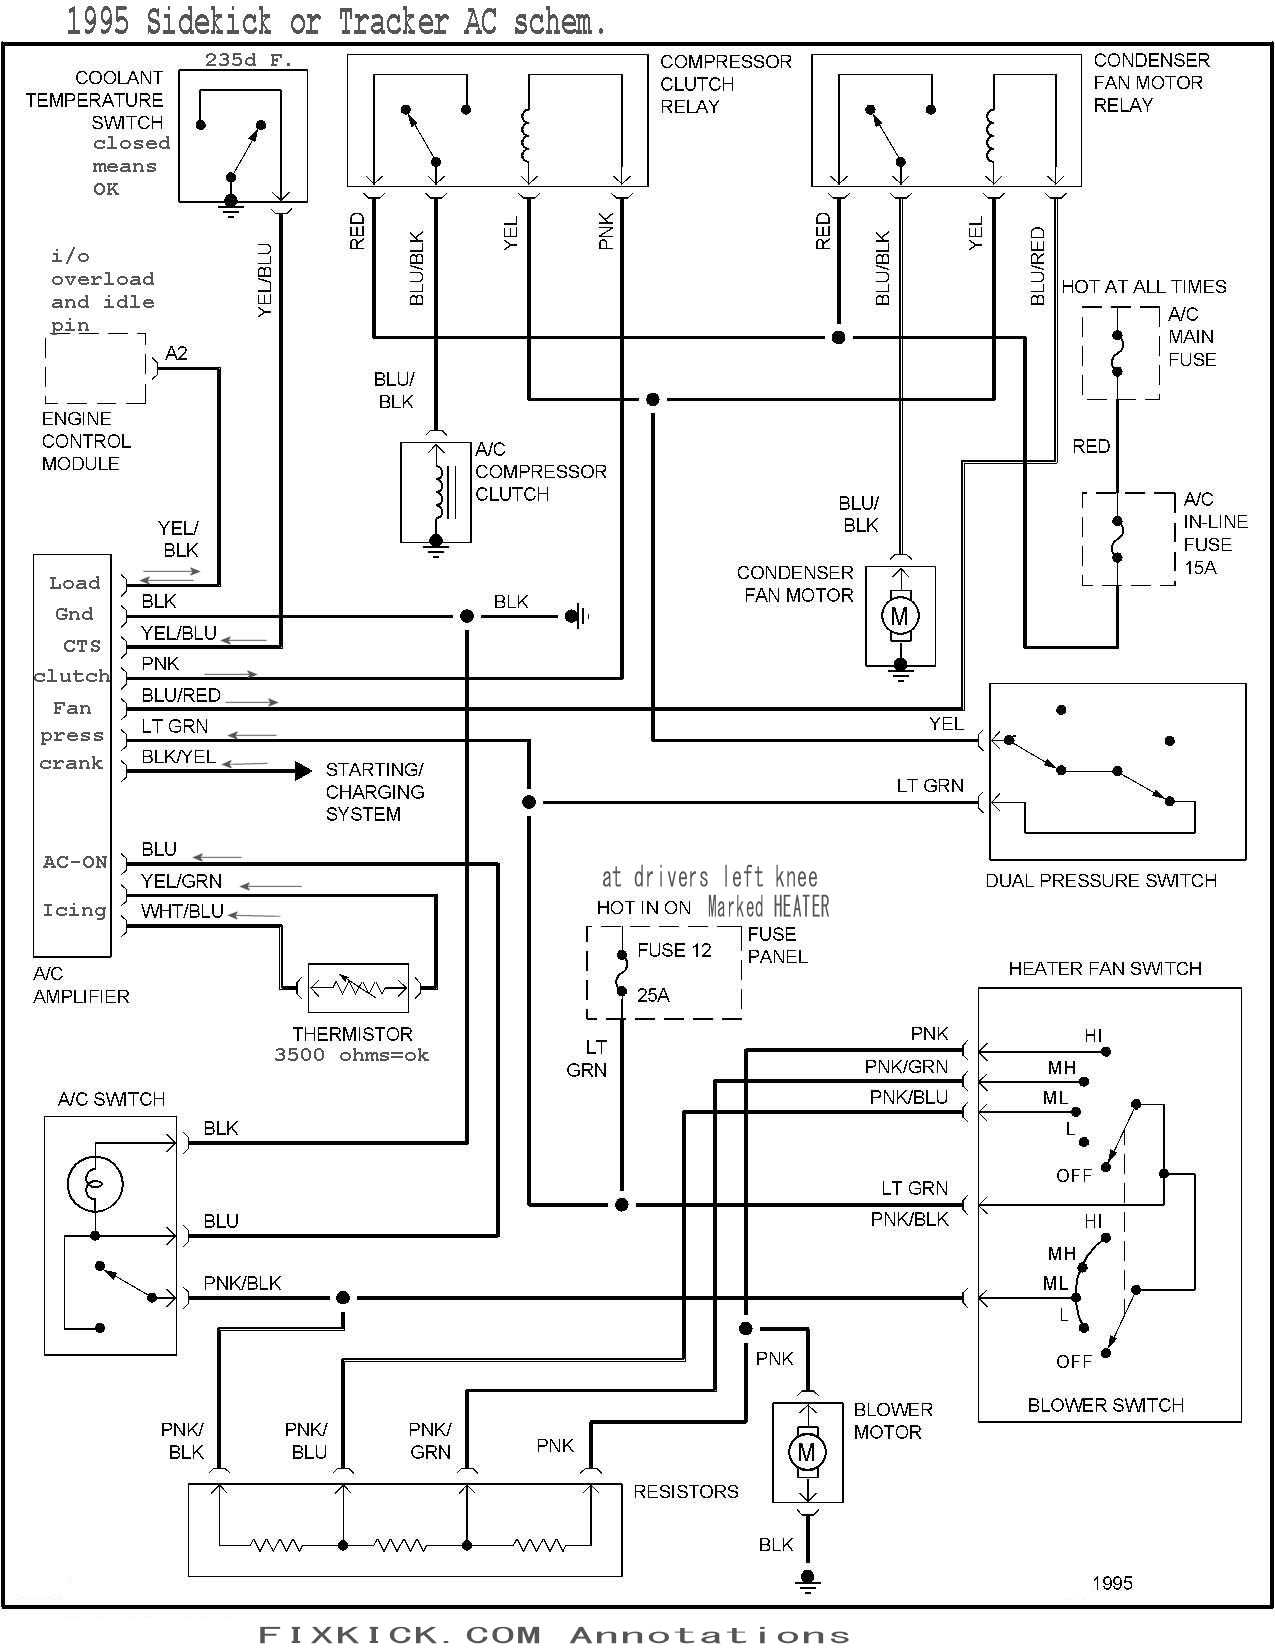 air conditioner wiring diagram troubleshooting 2003 impreza stereo repair